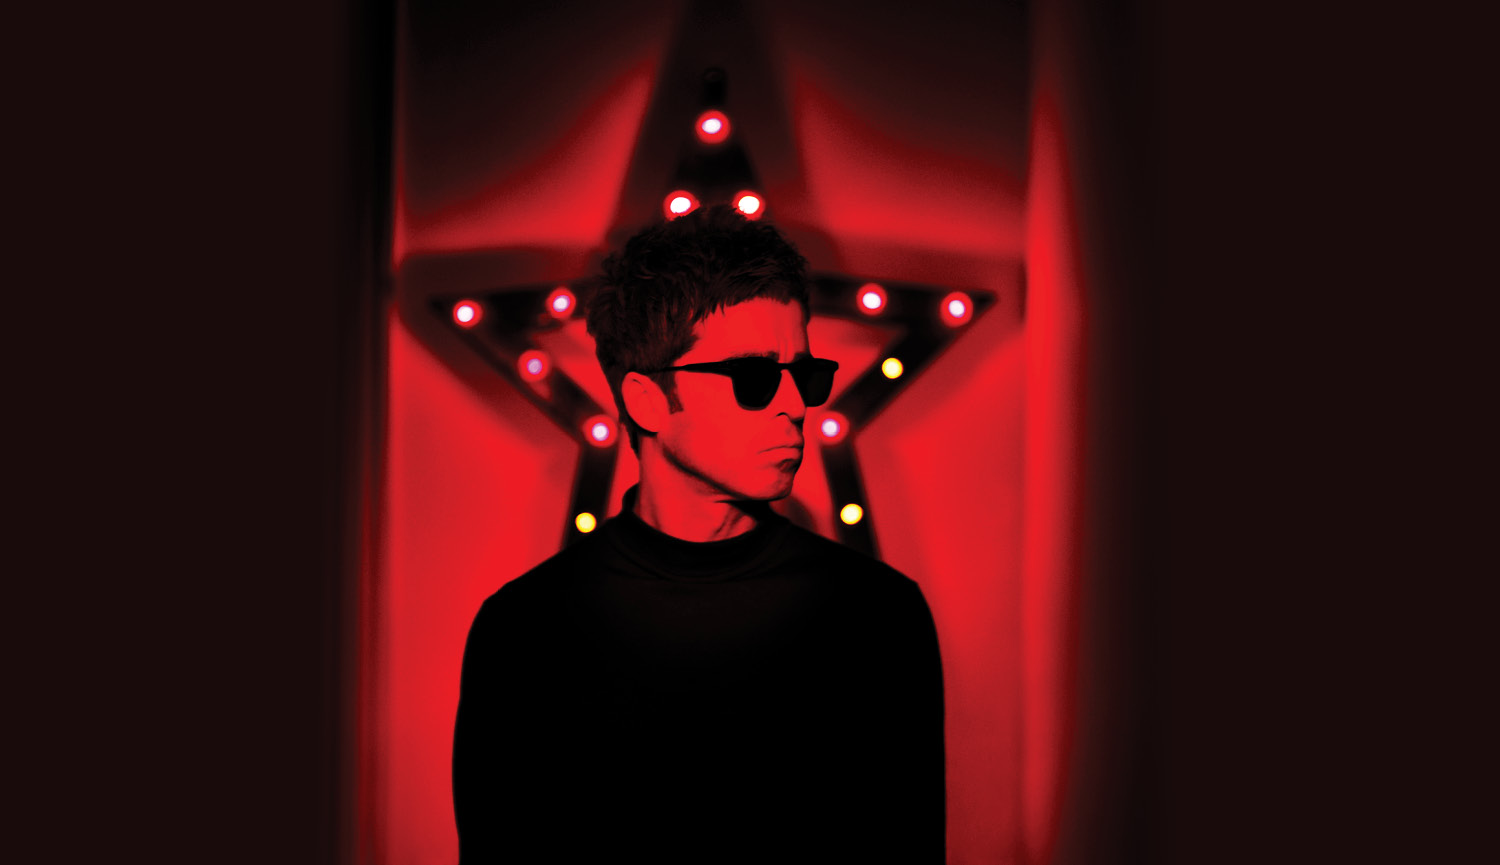 billboard-noel-gallagher